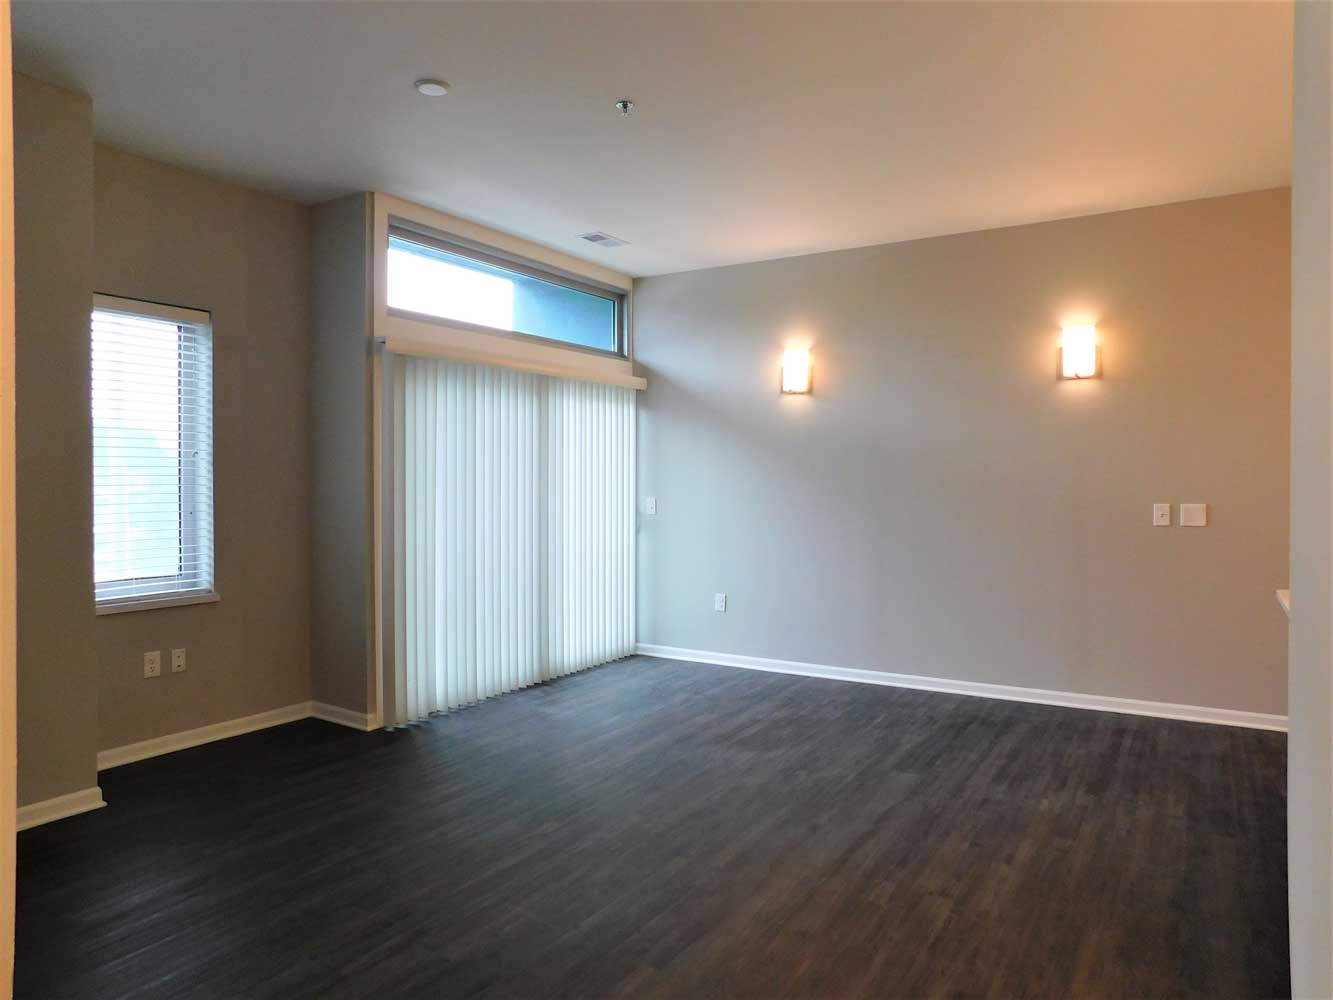 Blinds Available at Midtown Plaza Apartments in Kansas City, MO